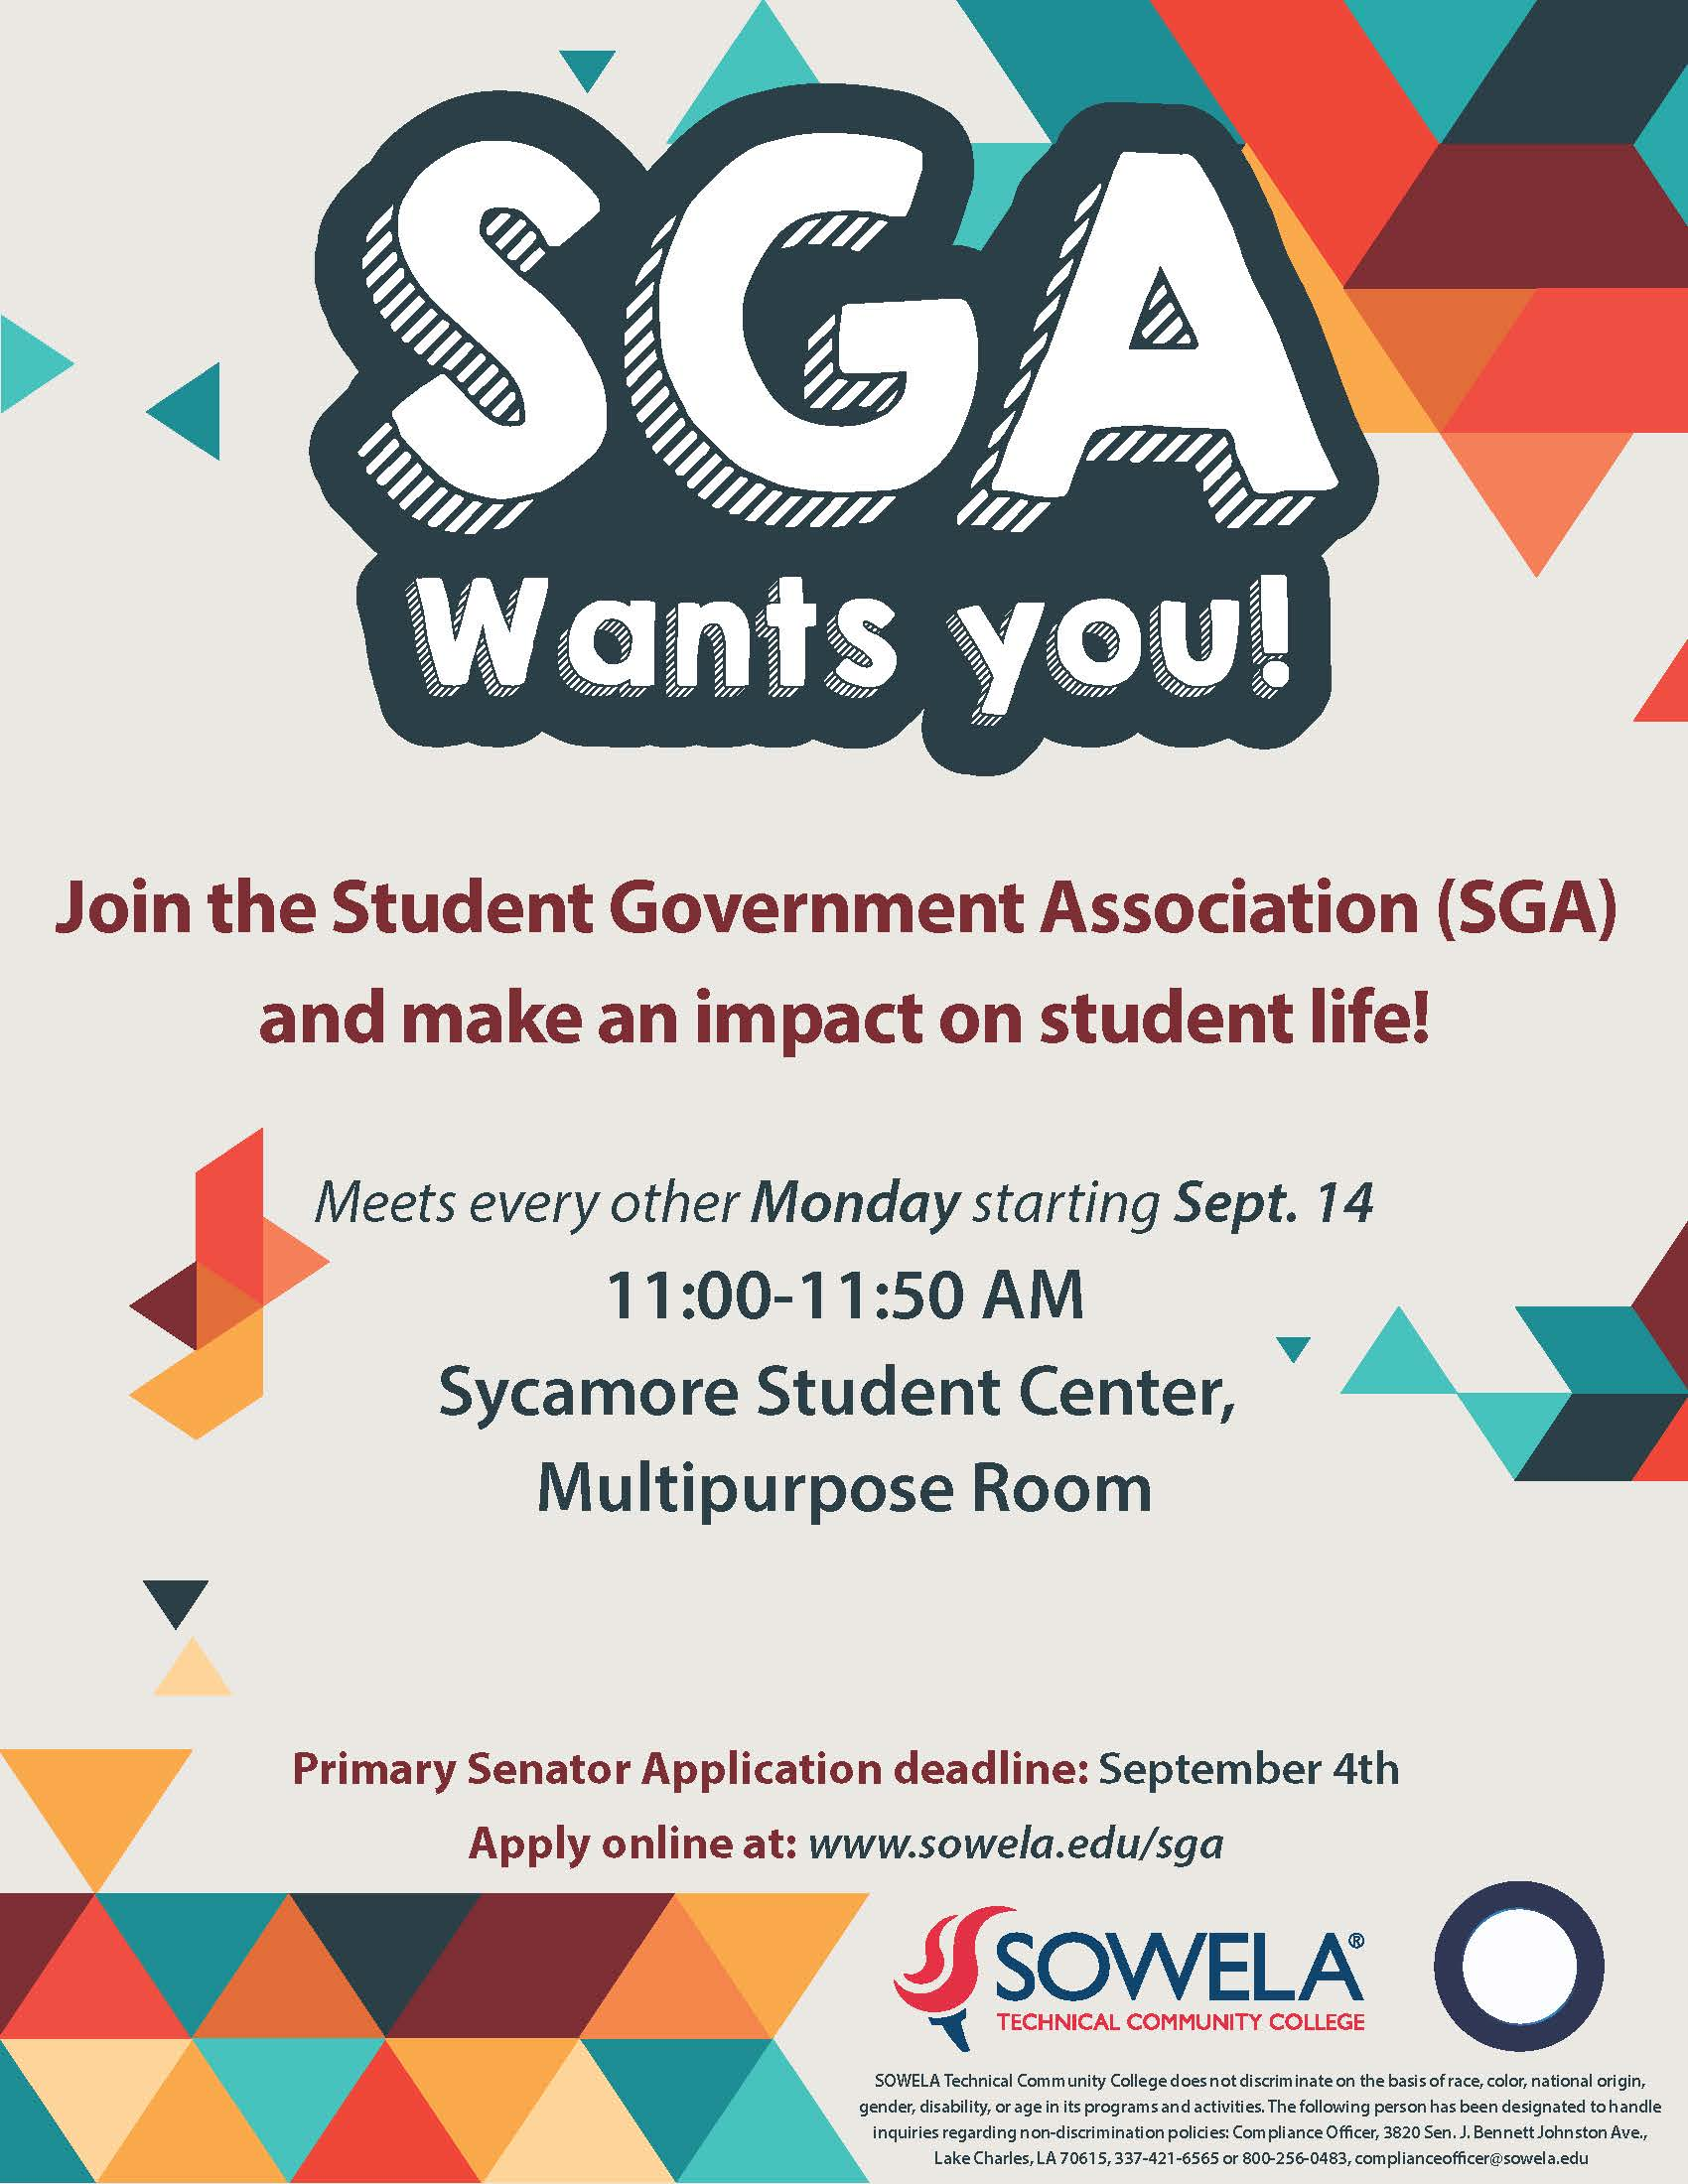 SGA Wants You! Join the Student Government Association (SGA) and make an impact on student life! Meets every other Monday starting September 14th from 11:00 to 11:50 AM in the Sycamore Student Center Multipurpose Room. Primary Senator application deadline: September 4th.